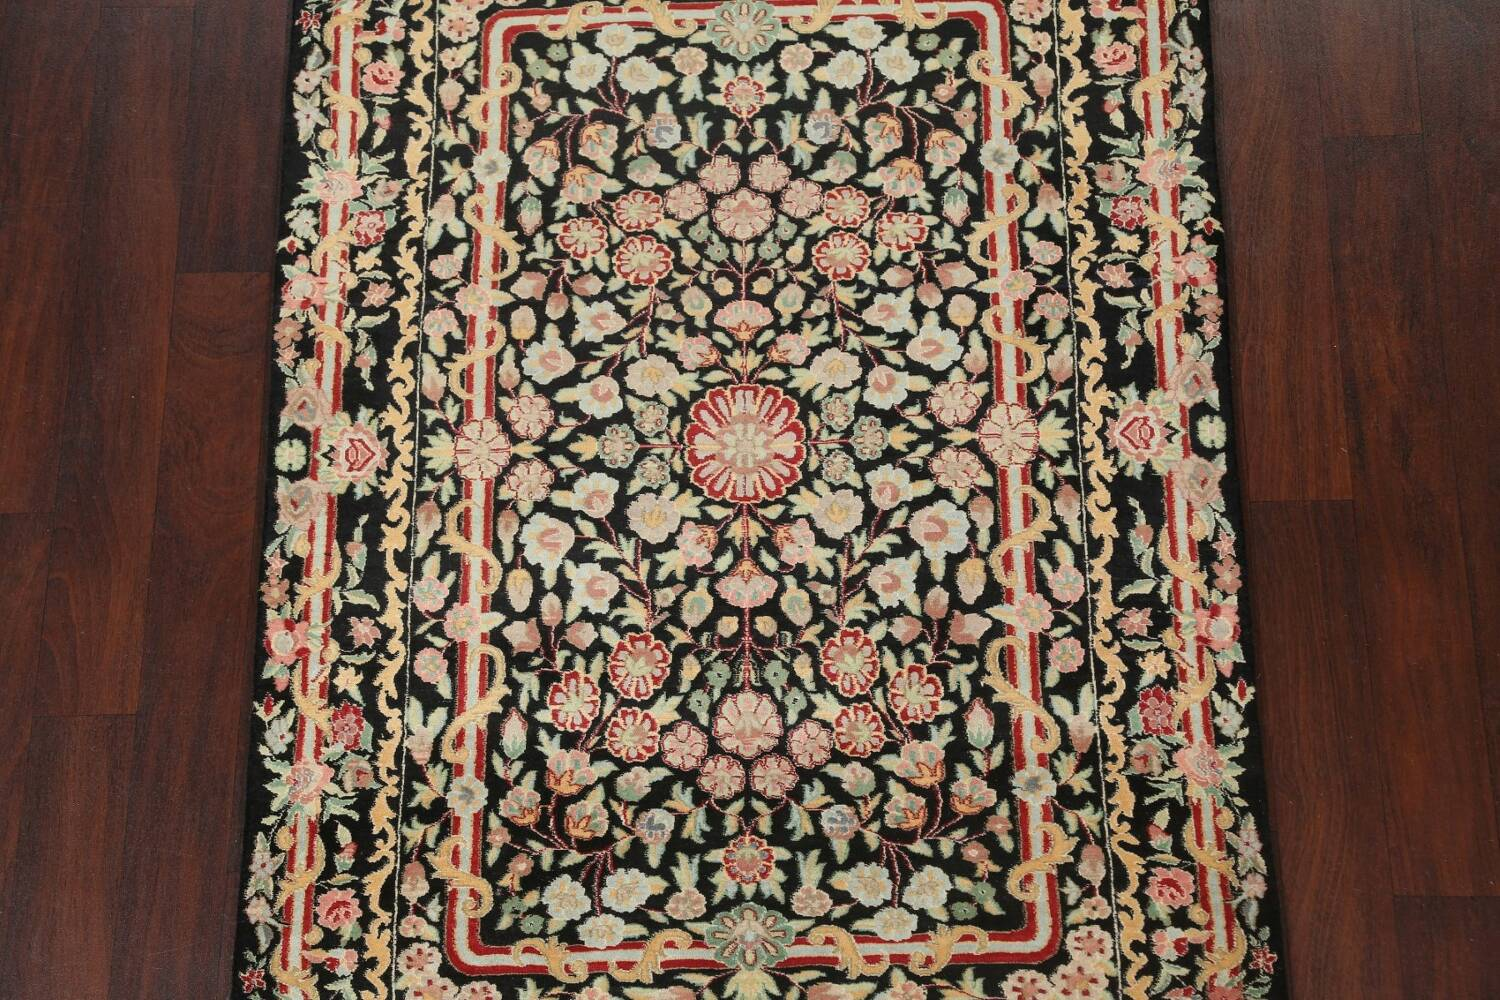 Vegetable Dye Aubusson Hand-Knotted Area Rug 4x6 image 3